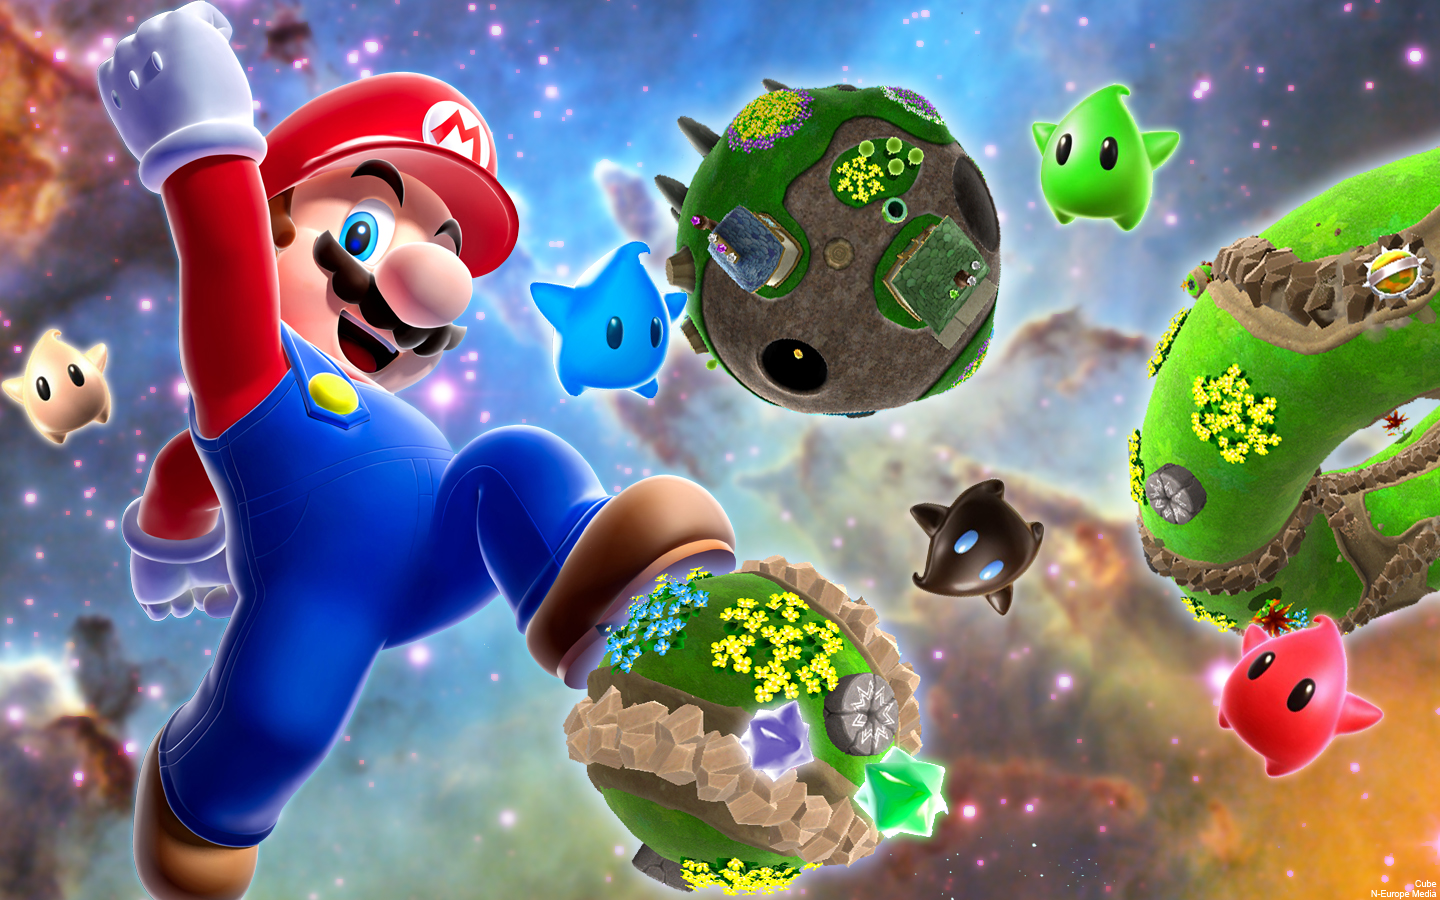 http://2.bp.blogspot.com/_nb0El8KSKZ4/TQQHekxUmCI/AAAAAAAAAAk/RTmCu5B0Mw0/s1600/super_mario_galaxy_wallpaper_1.jpg